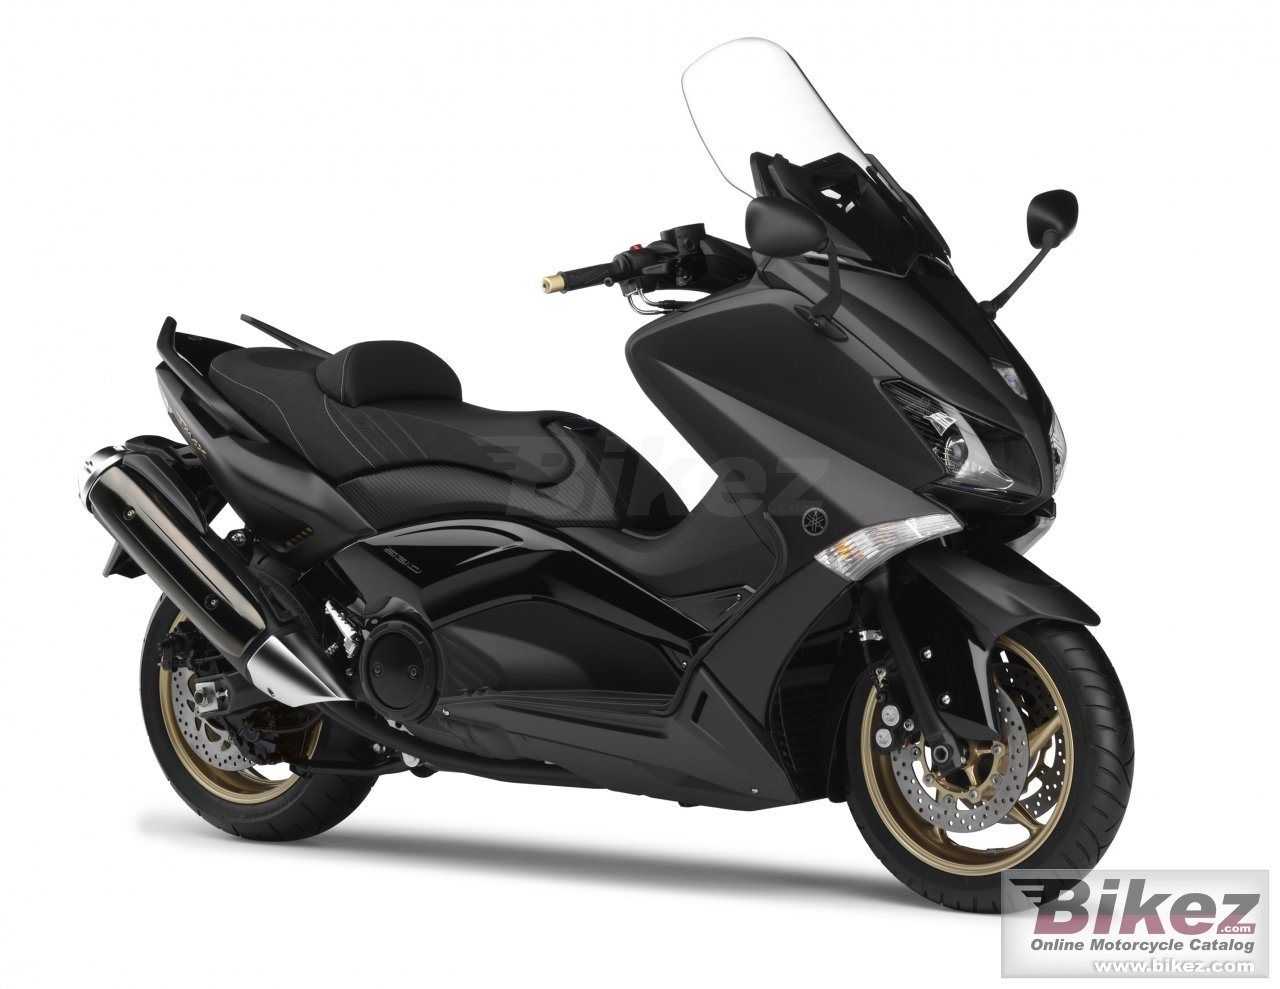 Big Yamaha tmax black max picture and wallpaper from Bikez.com